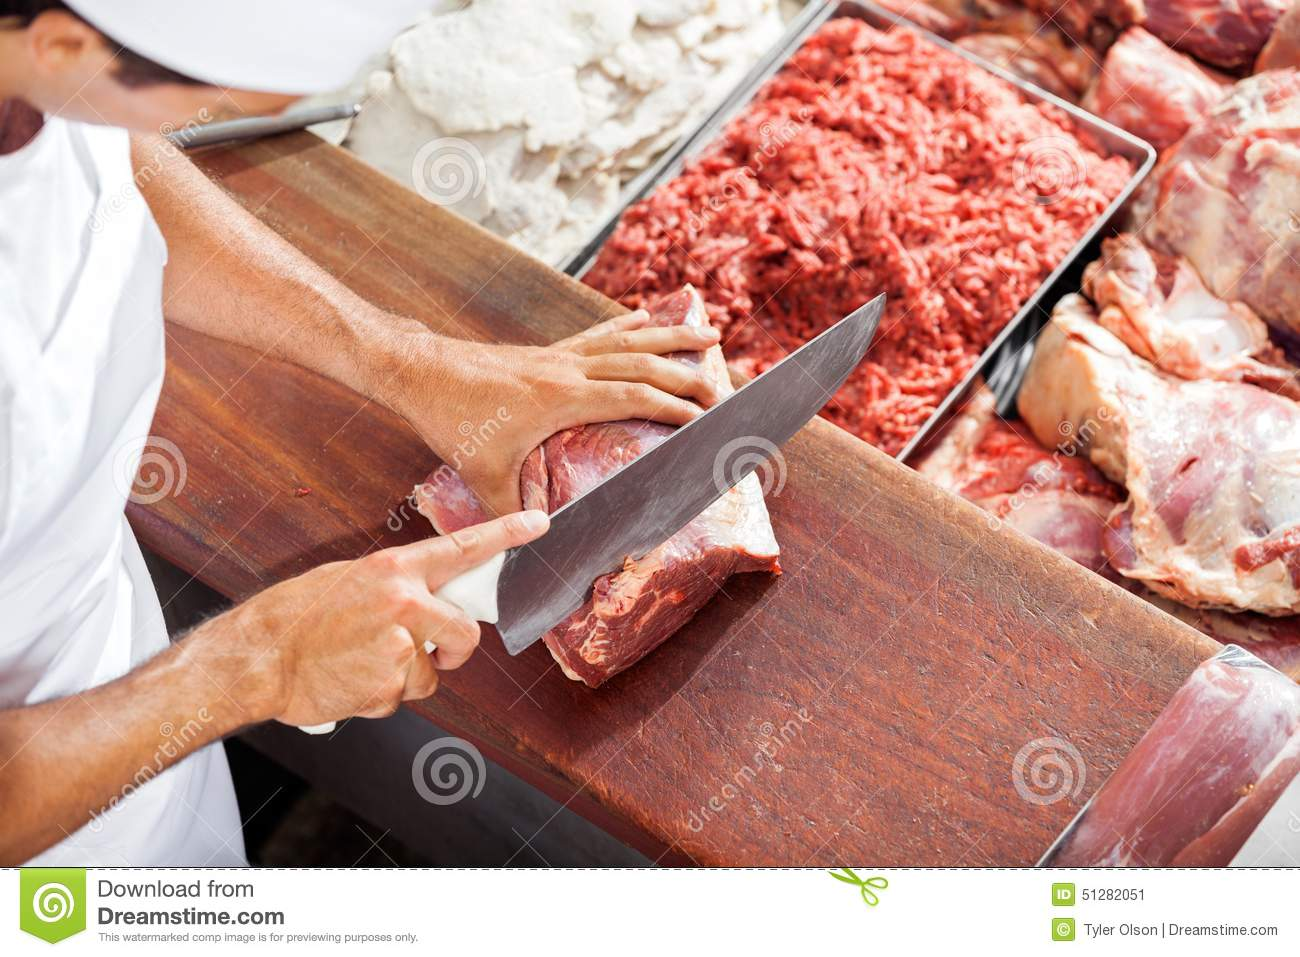 Benny The Butcher Man Of The Kitchen Instrumental : Smiling Butcher Cutting Meat At Counter Stock Photo - Image: 51282051